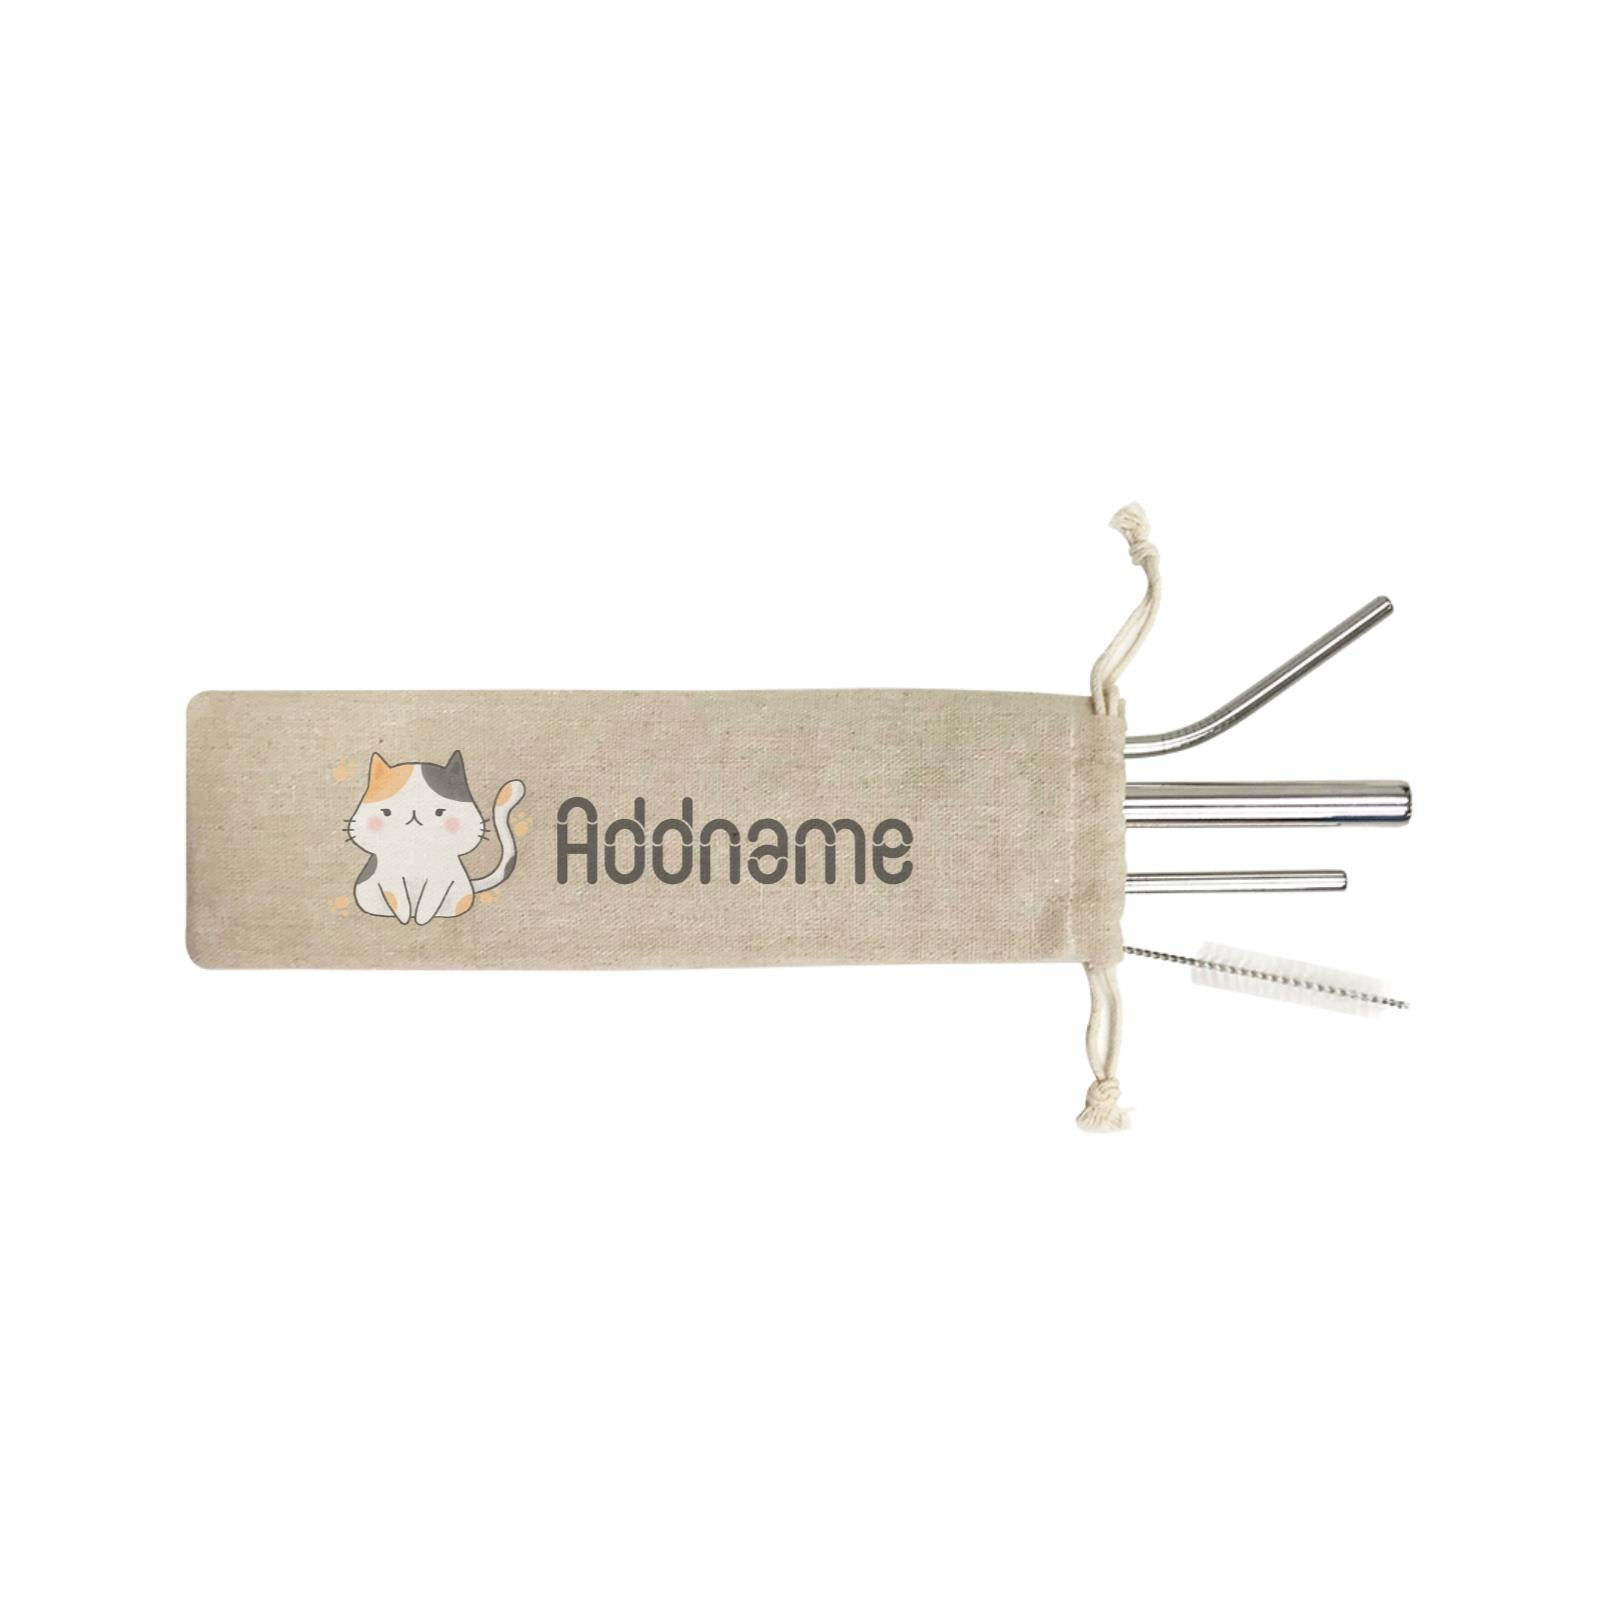 Cute Hand Drawn Style Cat Addname ST SZP 4-In-1 Stainless Steel Straw Set in Satchel